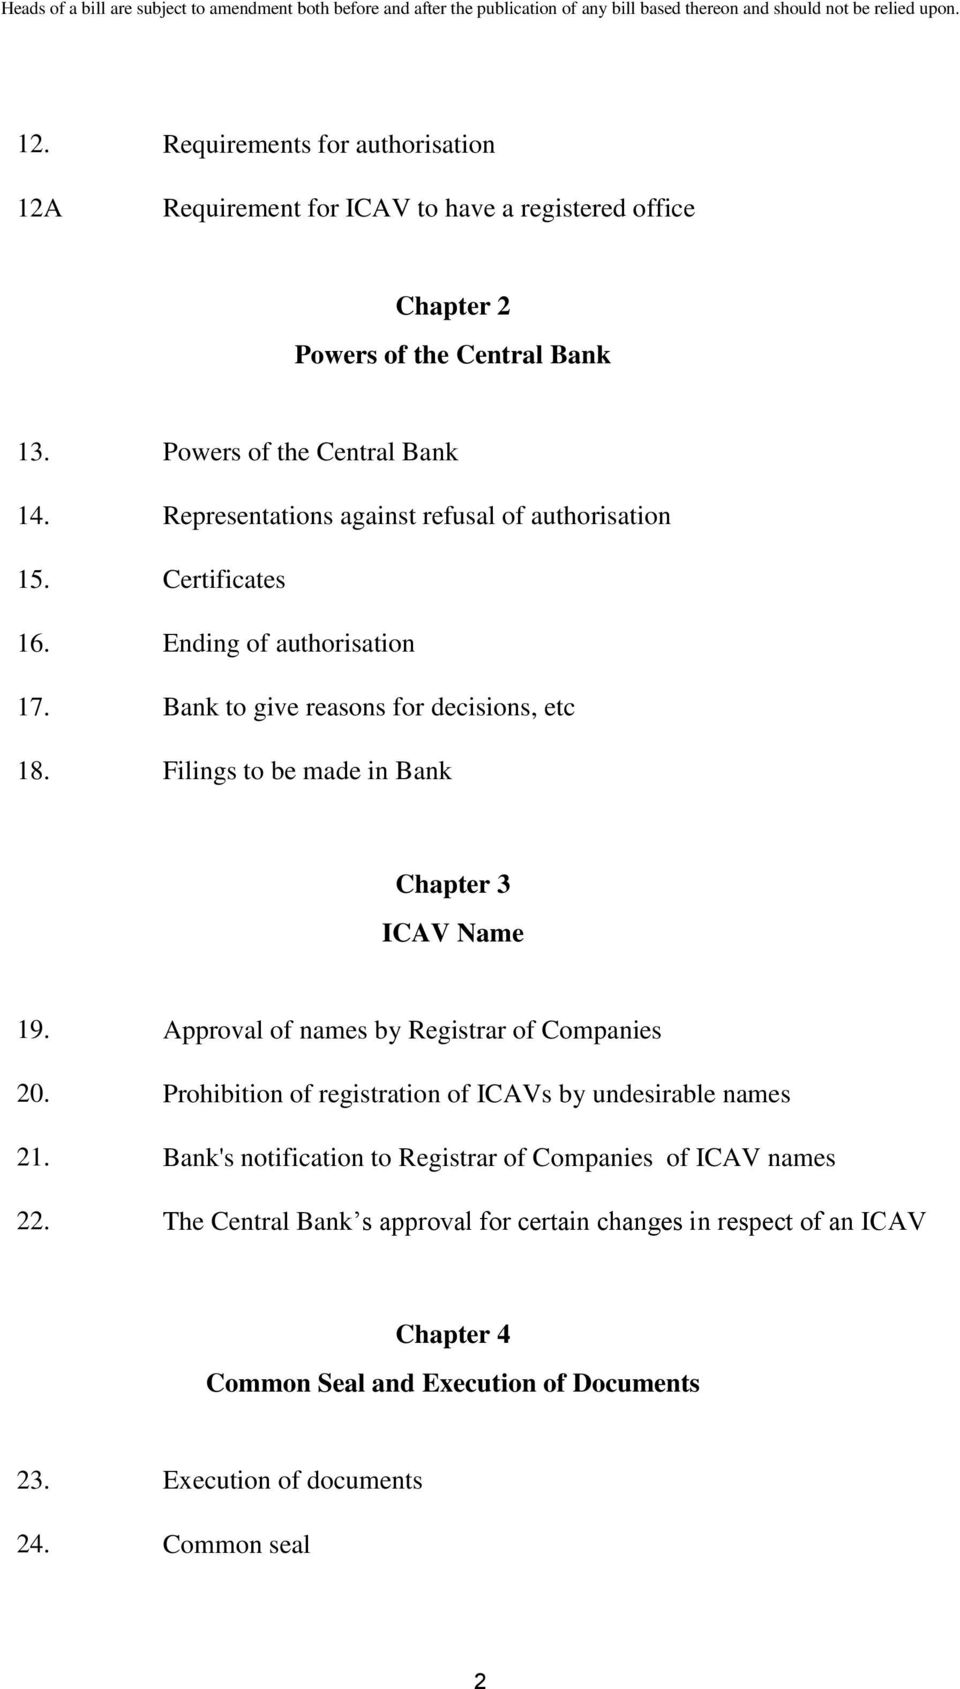 Filings to be made in Bank Chapter 3 ICAV Name 19. Approval of names by Registrar of Companies 20. Prohibition of registration of ICAVs by undesirable names 21.